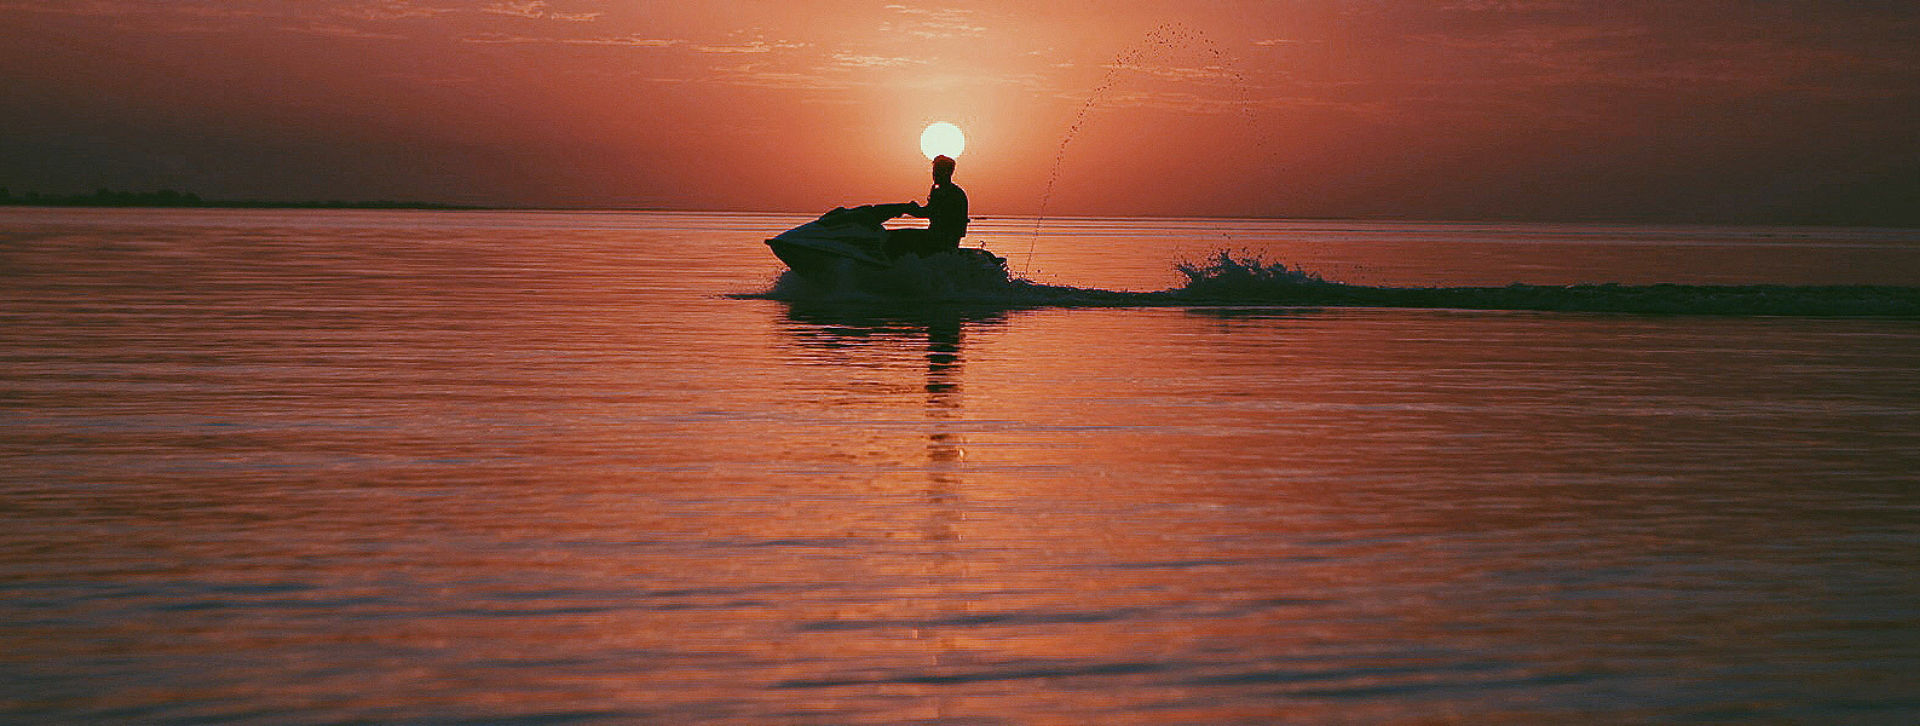 Personal watercraft on water at sunset